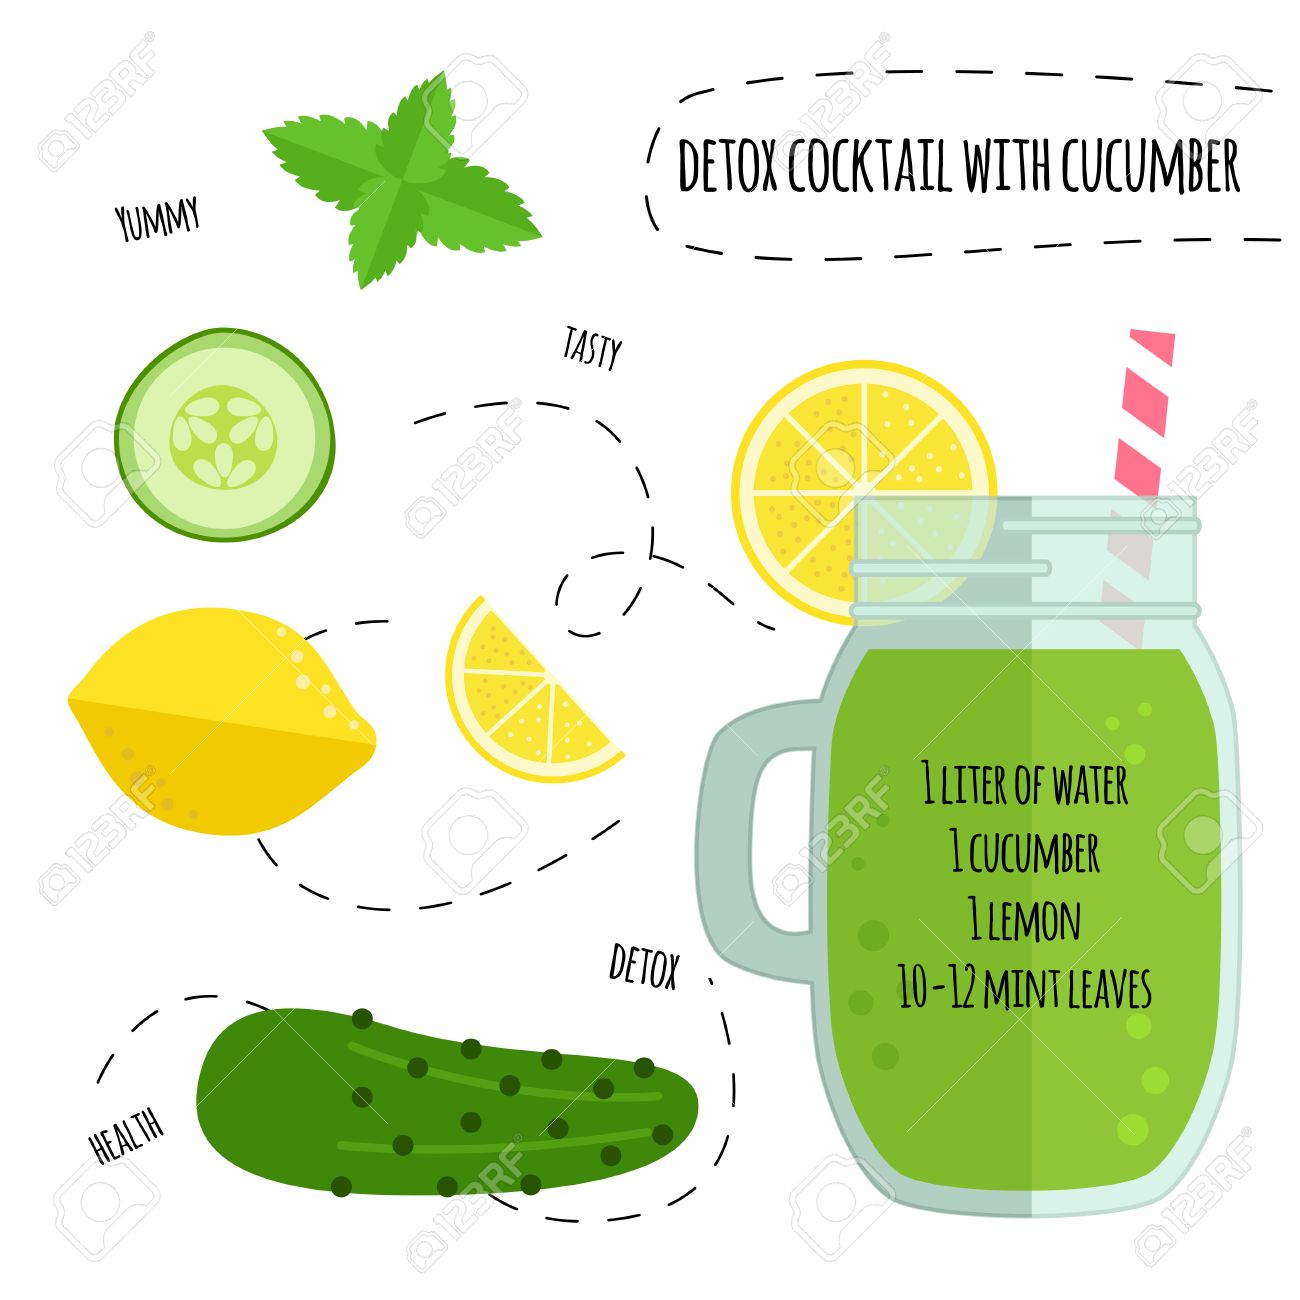 Recipe detox cocktail with lemon, cucumber, mint. Vector illustration for greeting cards, magazine, cafe and restaurant menu. Fresh smoothies for healthy life, diets. - 55732627